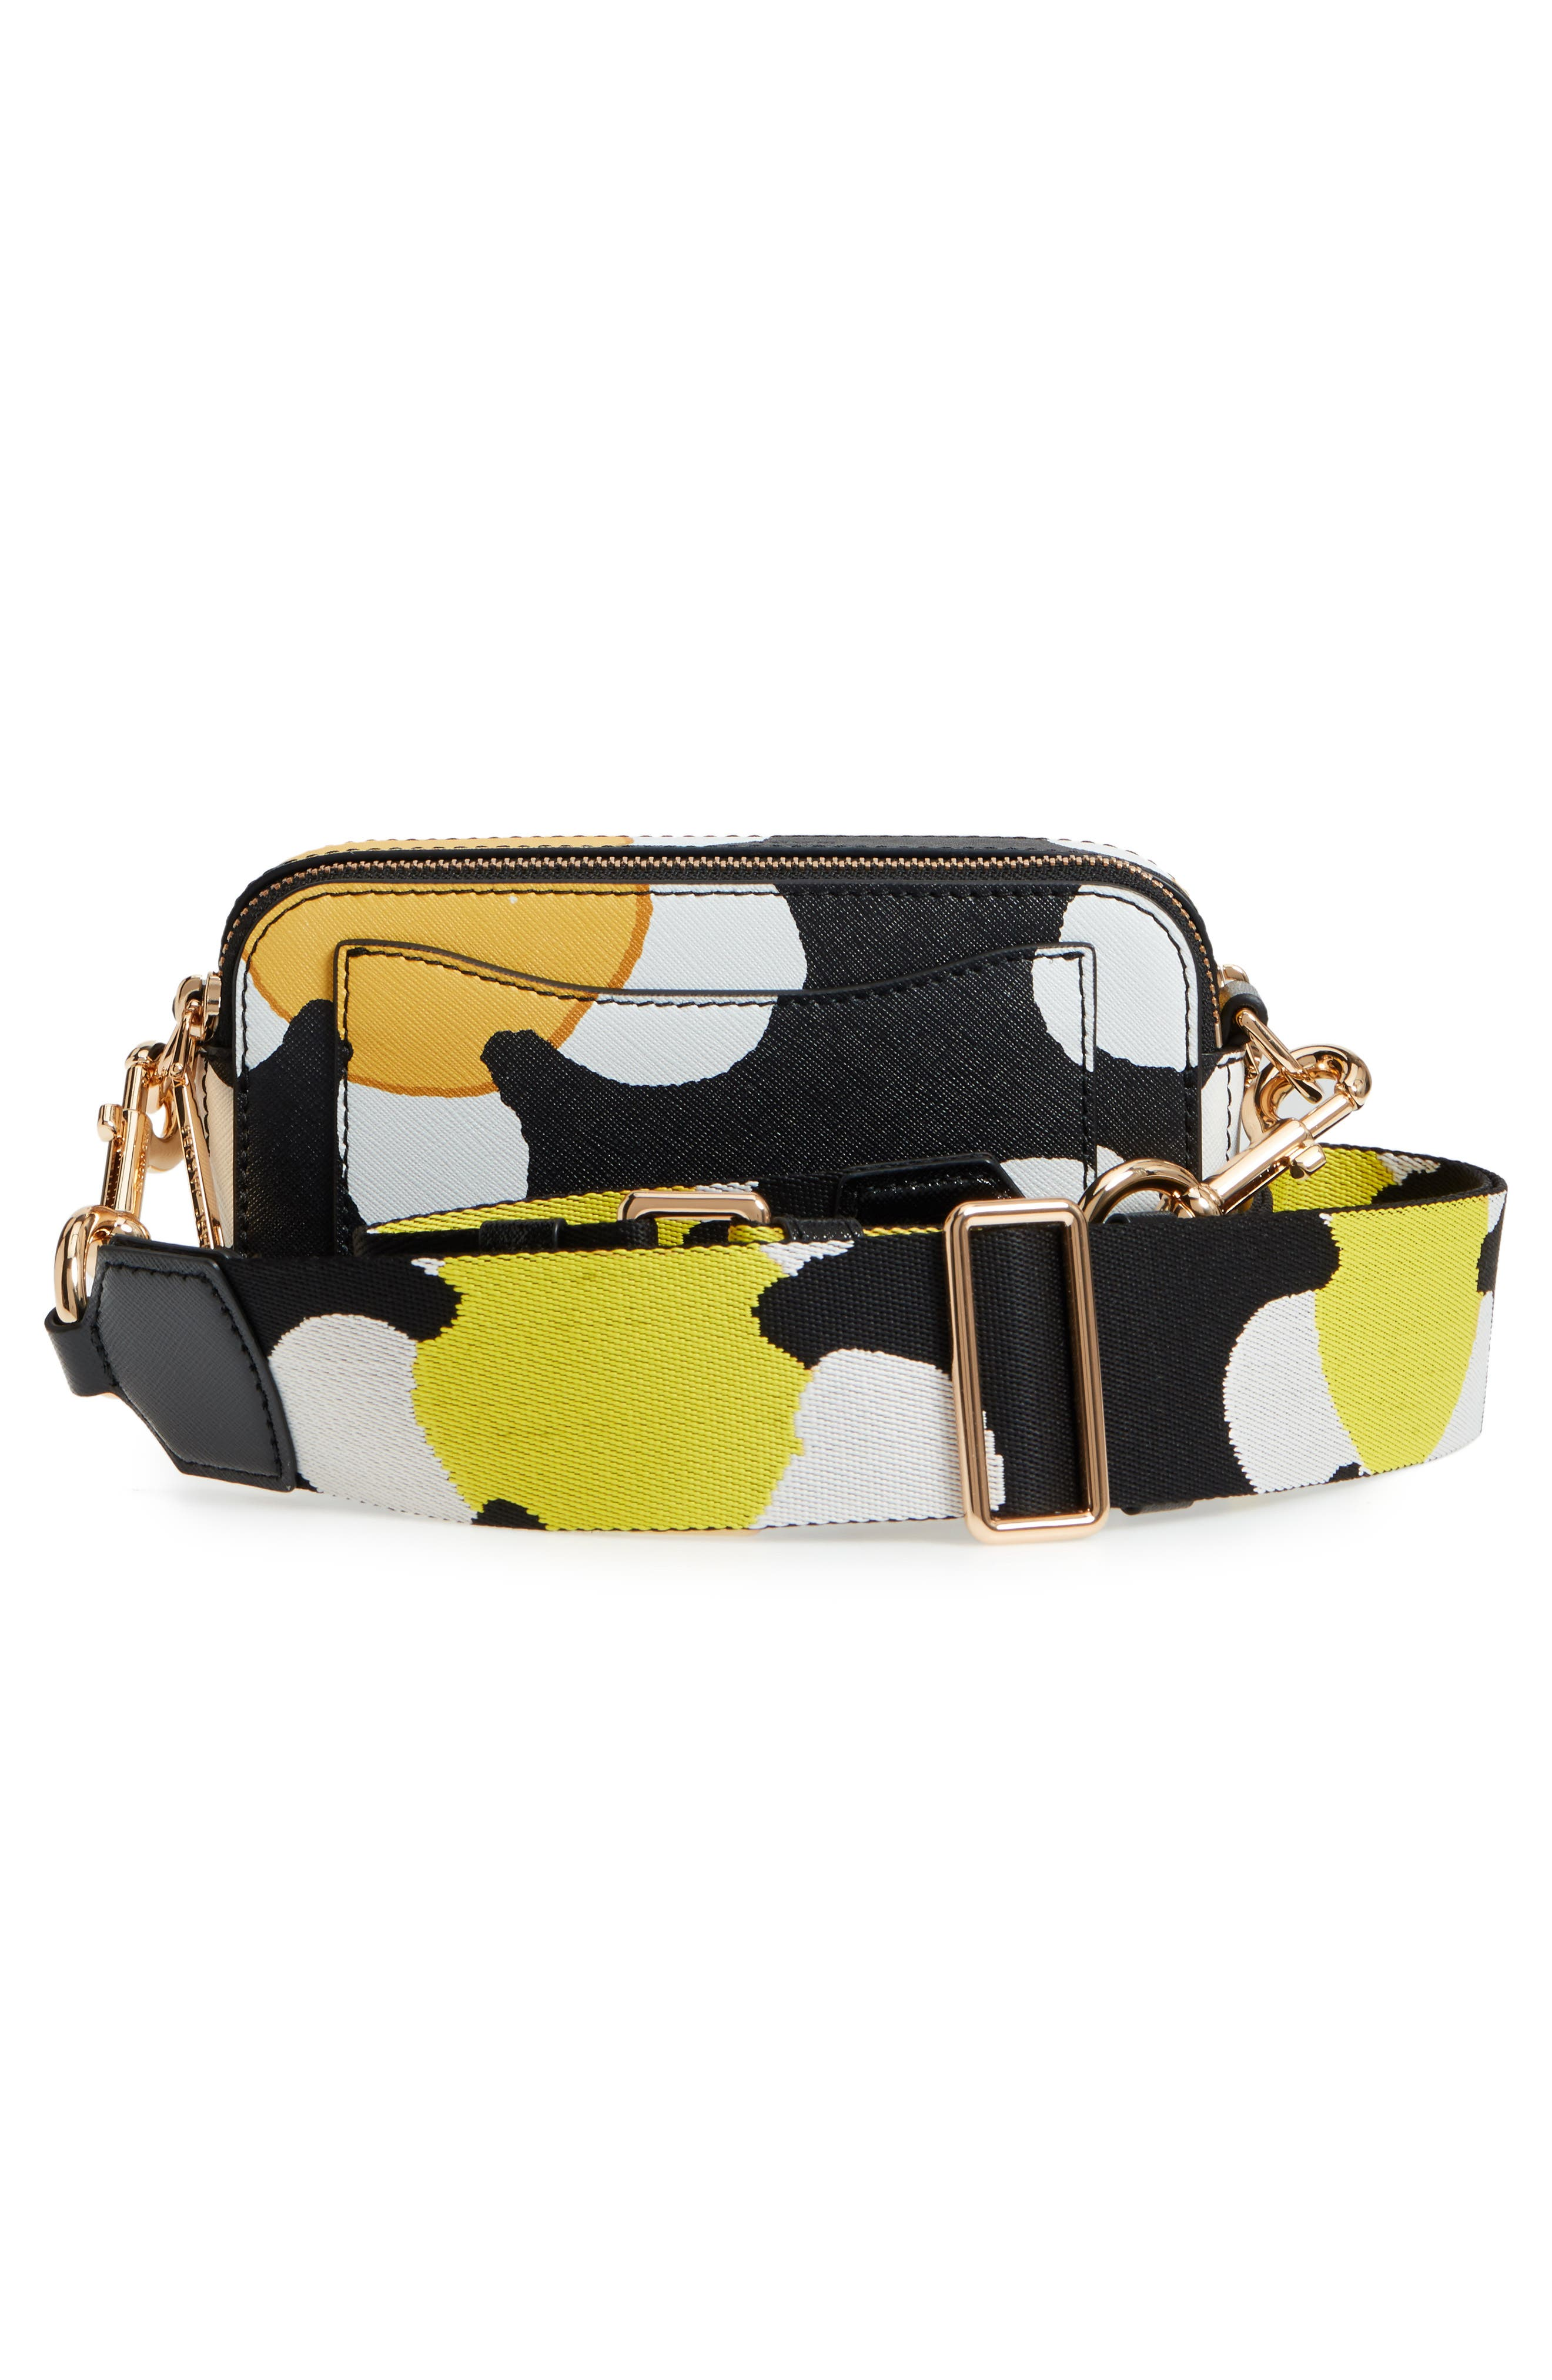 Snapshot Daisy Print Leather Crossbody Bag,                             Alternate thumbnail 3, color,                             Yellow Multi